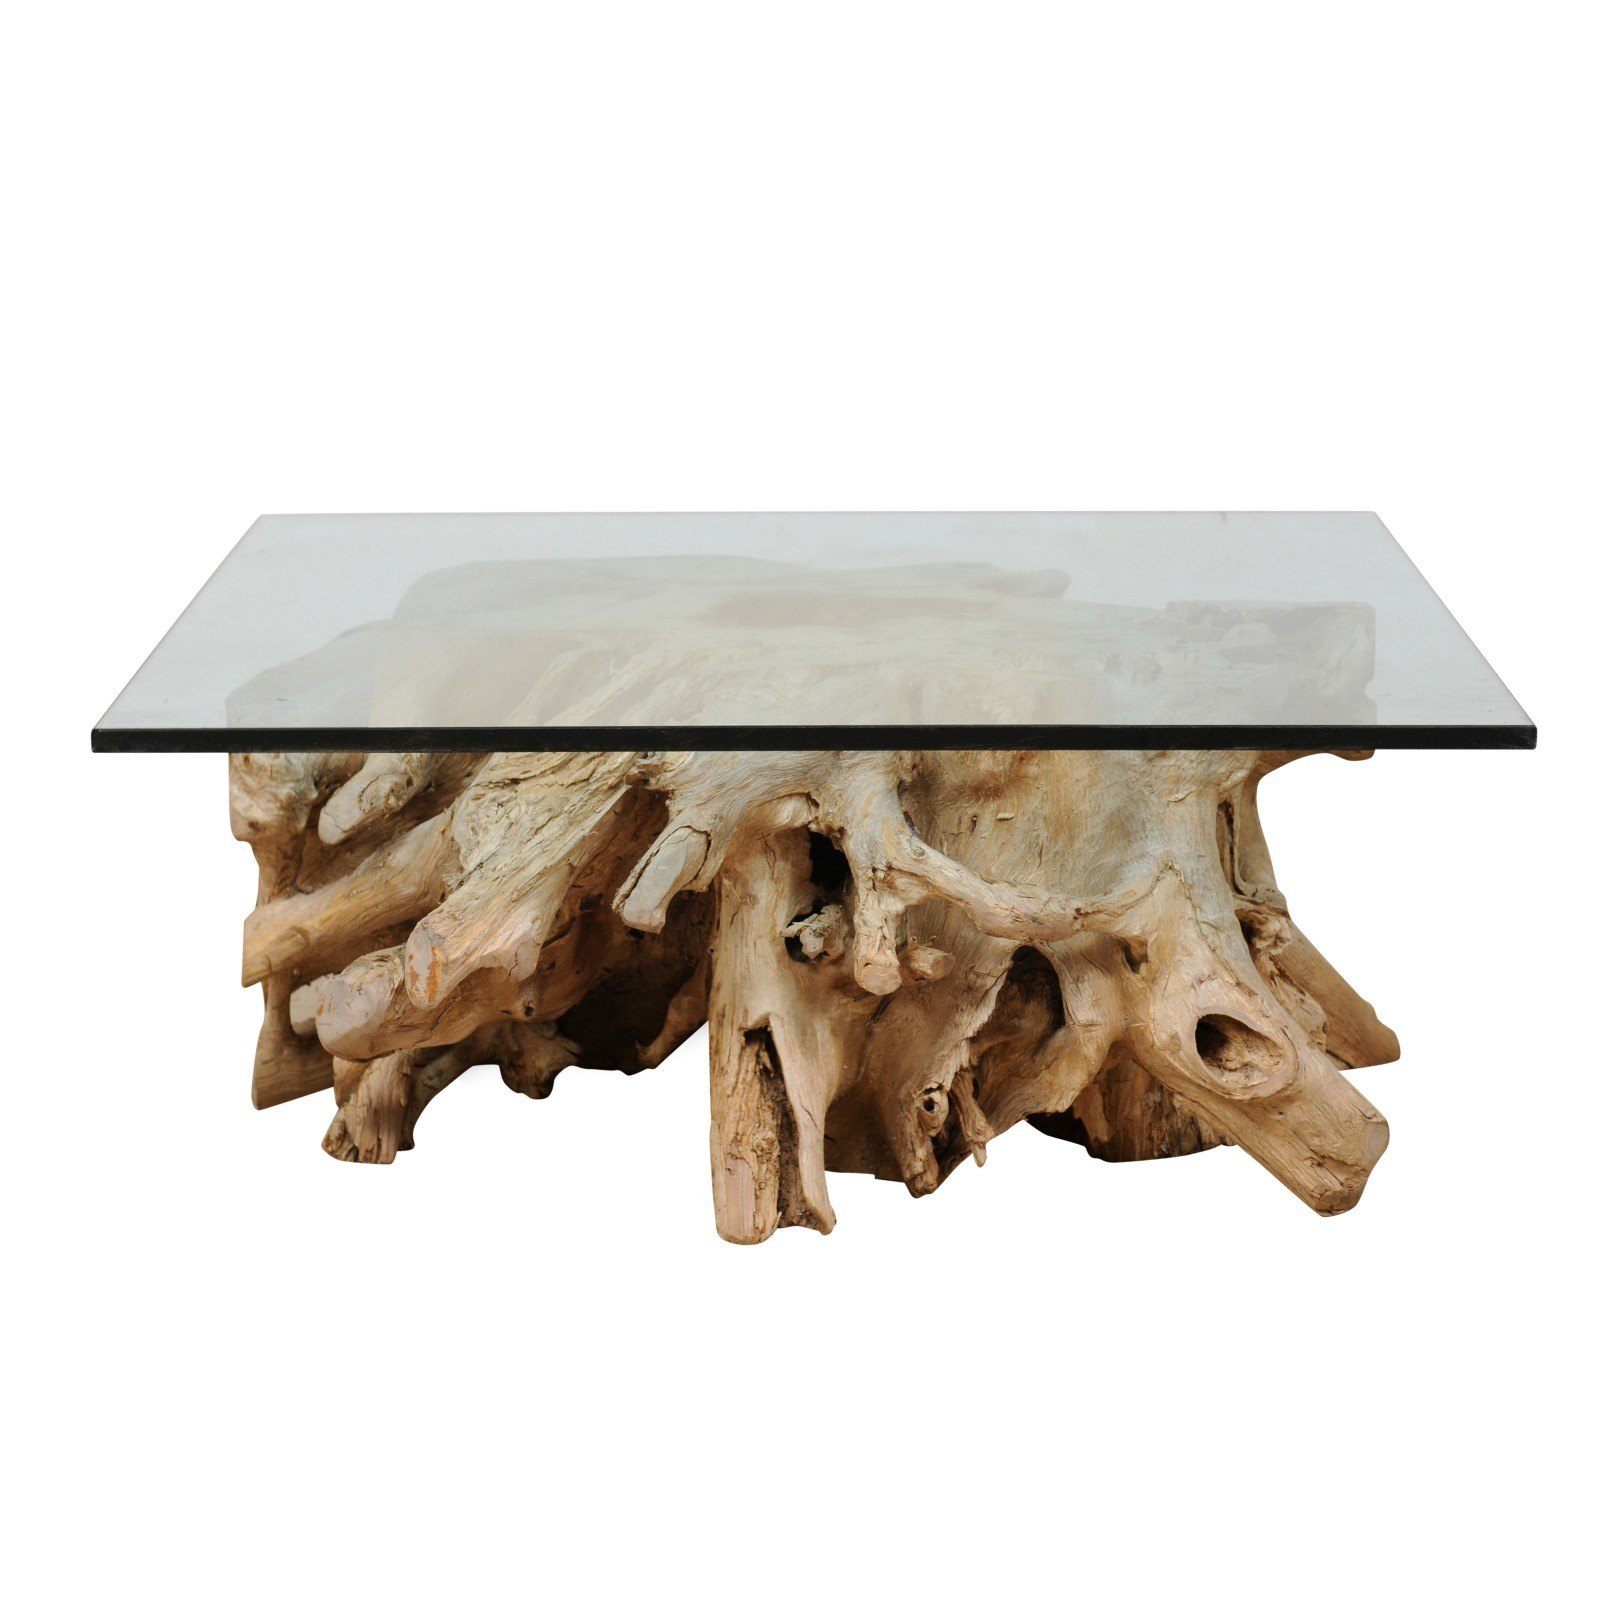 A Tree Root & Glass Coffee Table